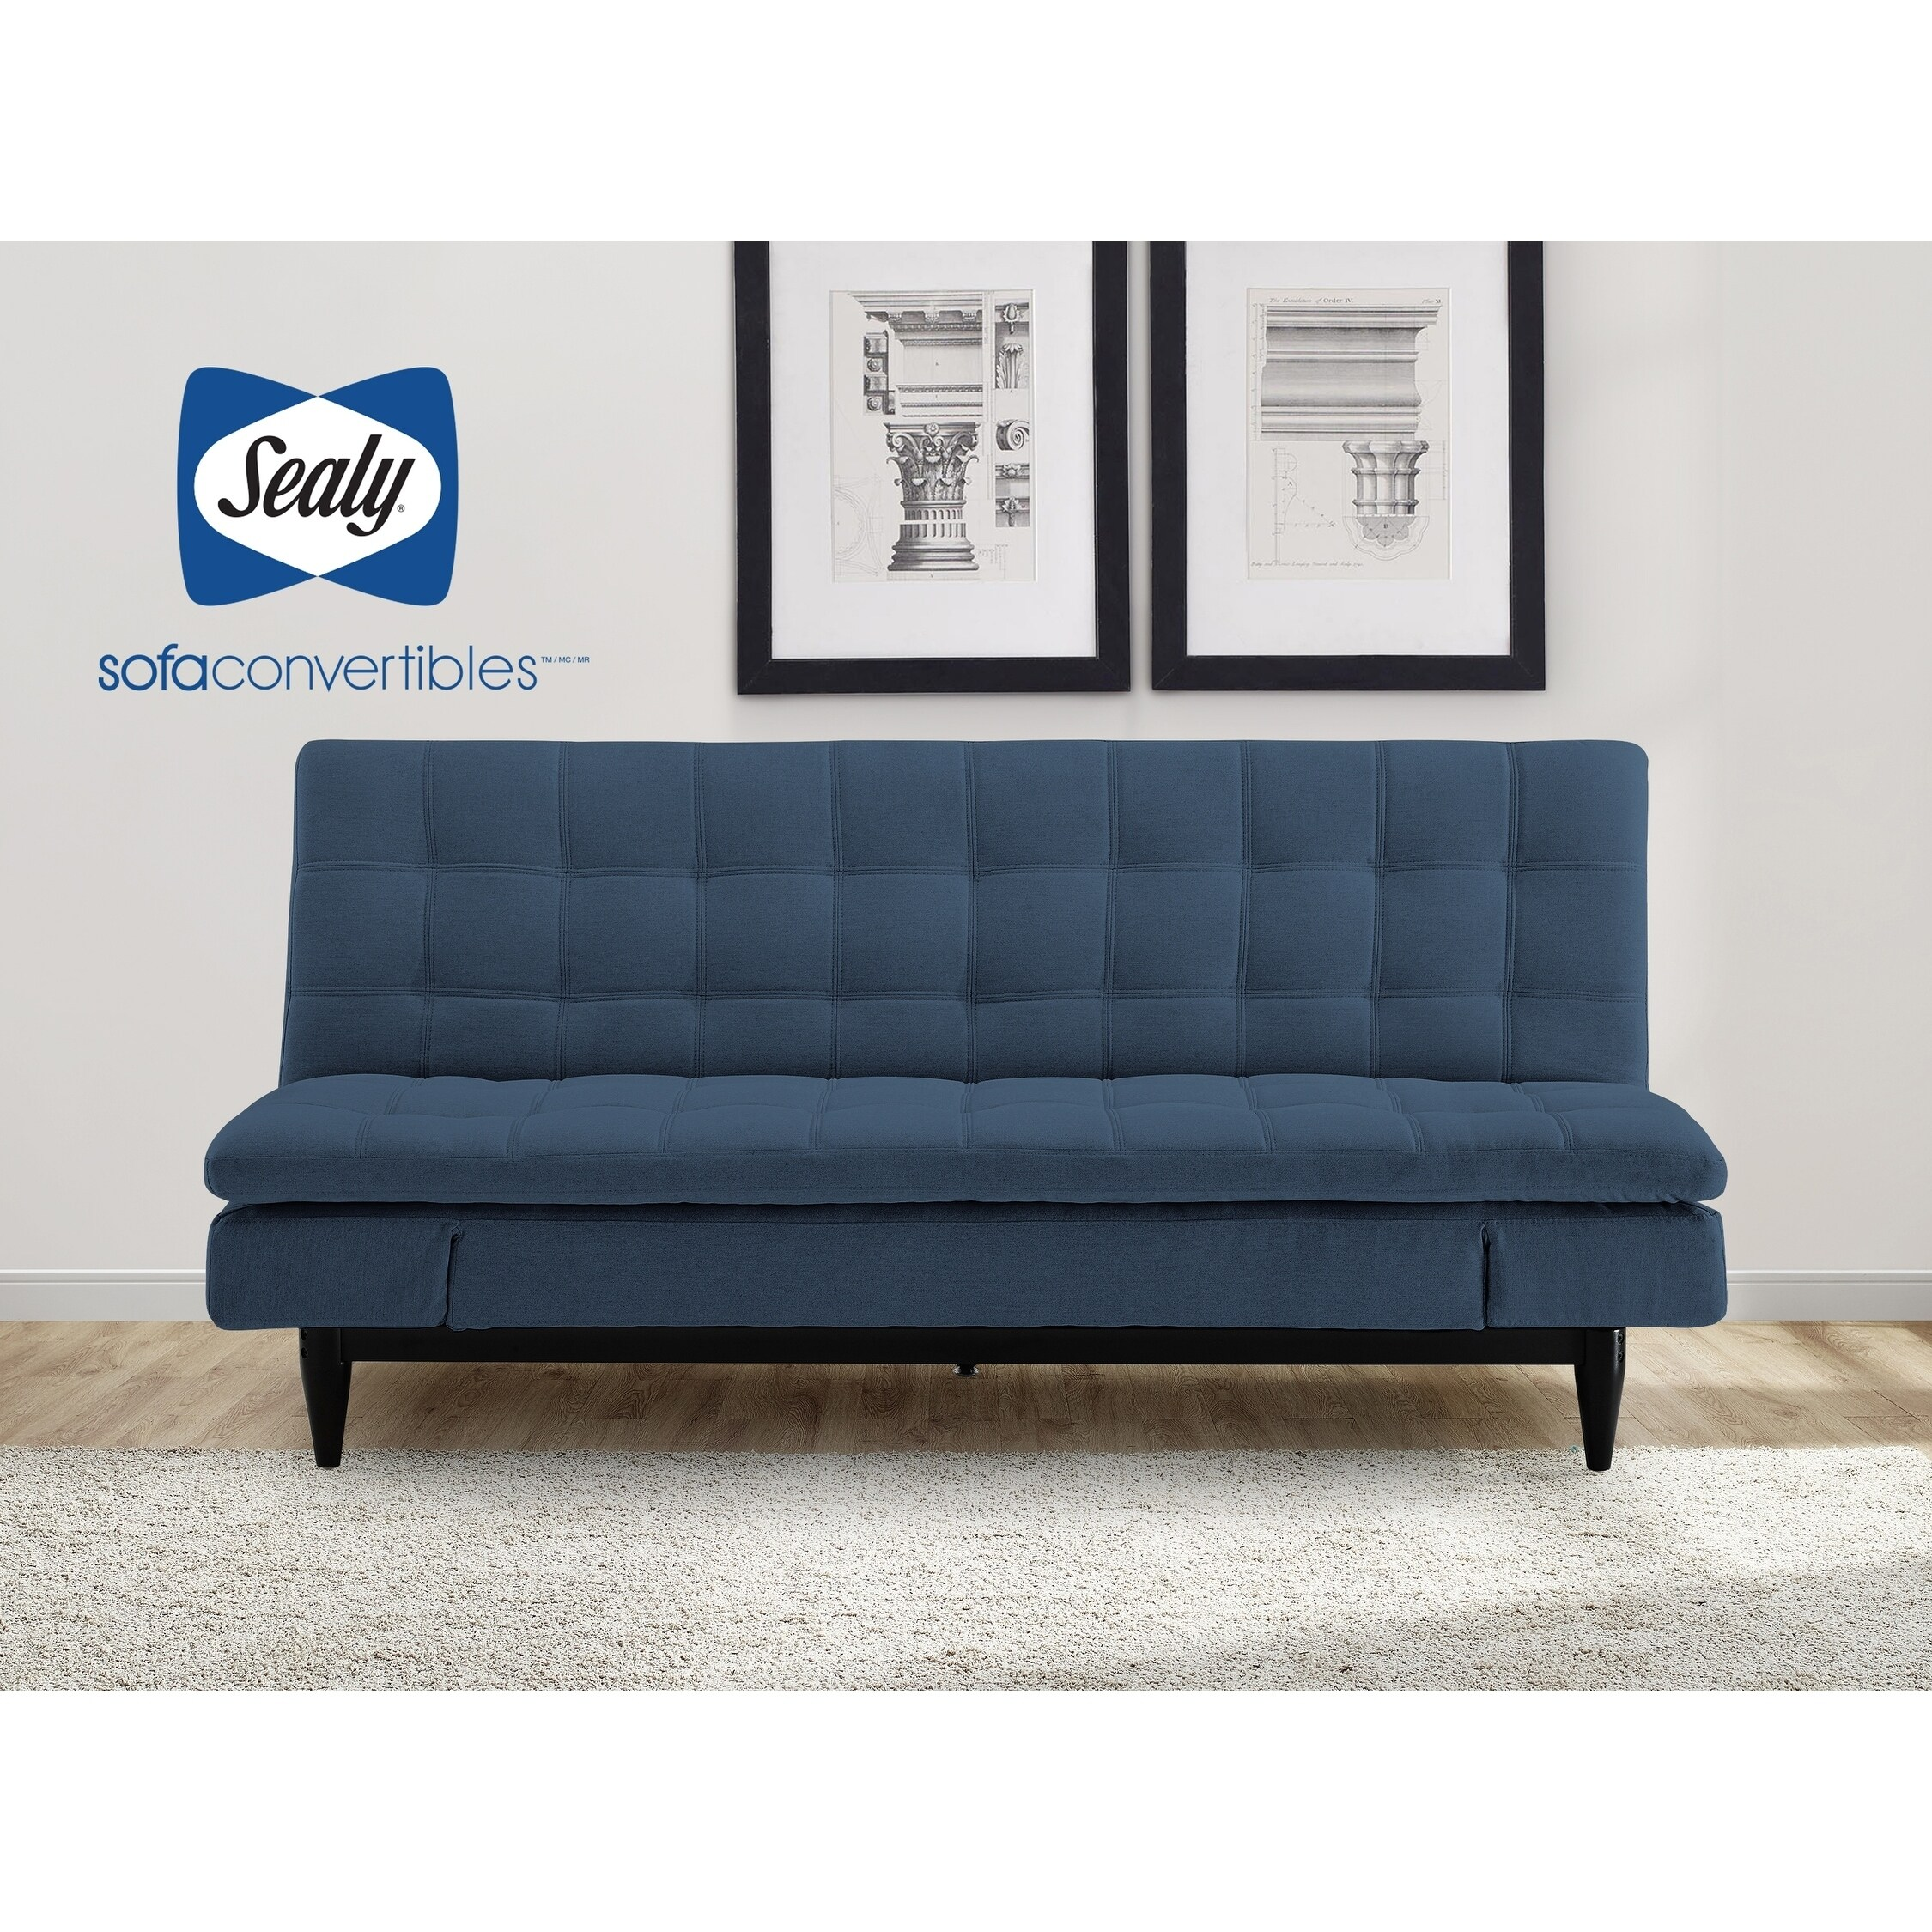 Montreal sofa convertible by sealy